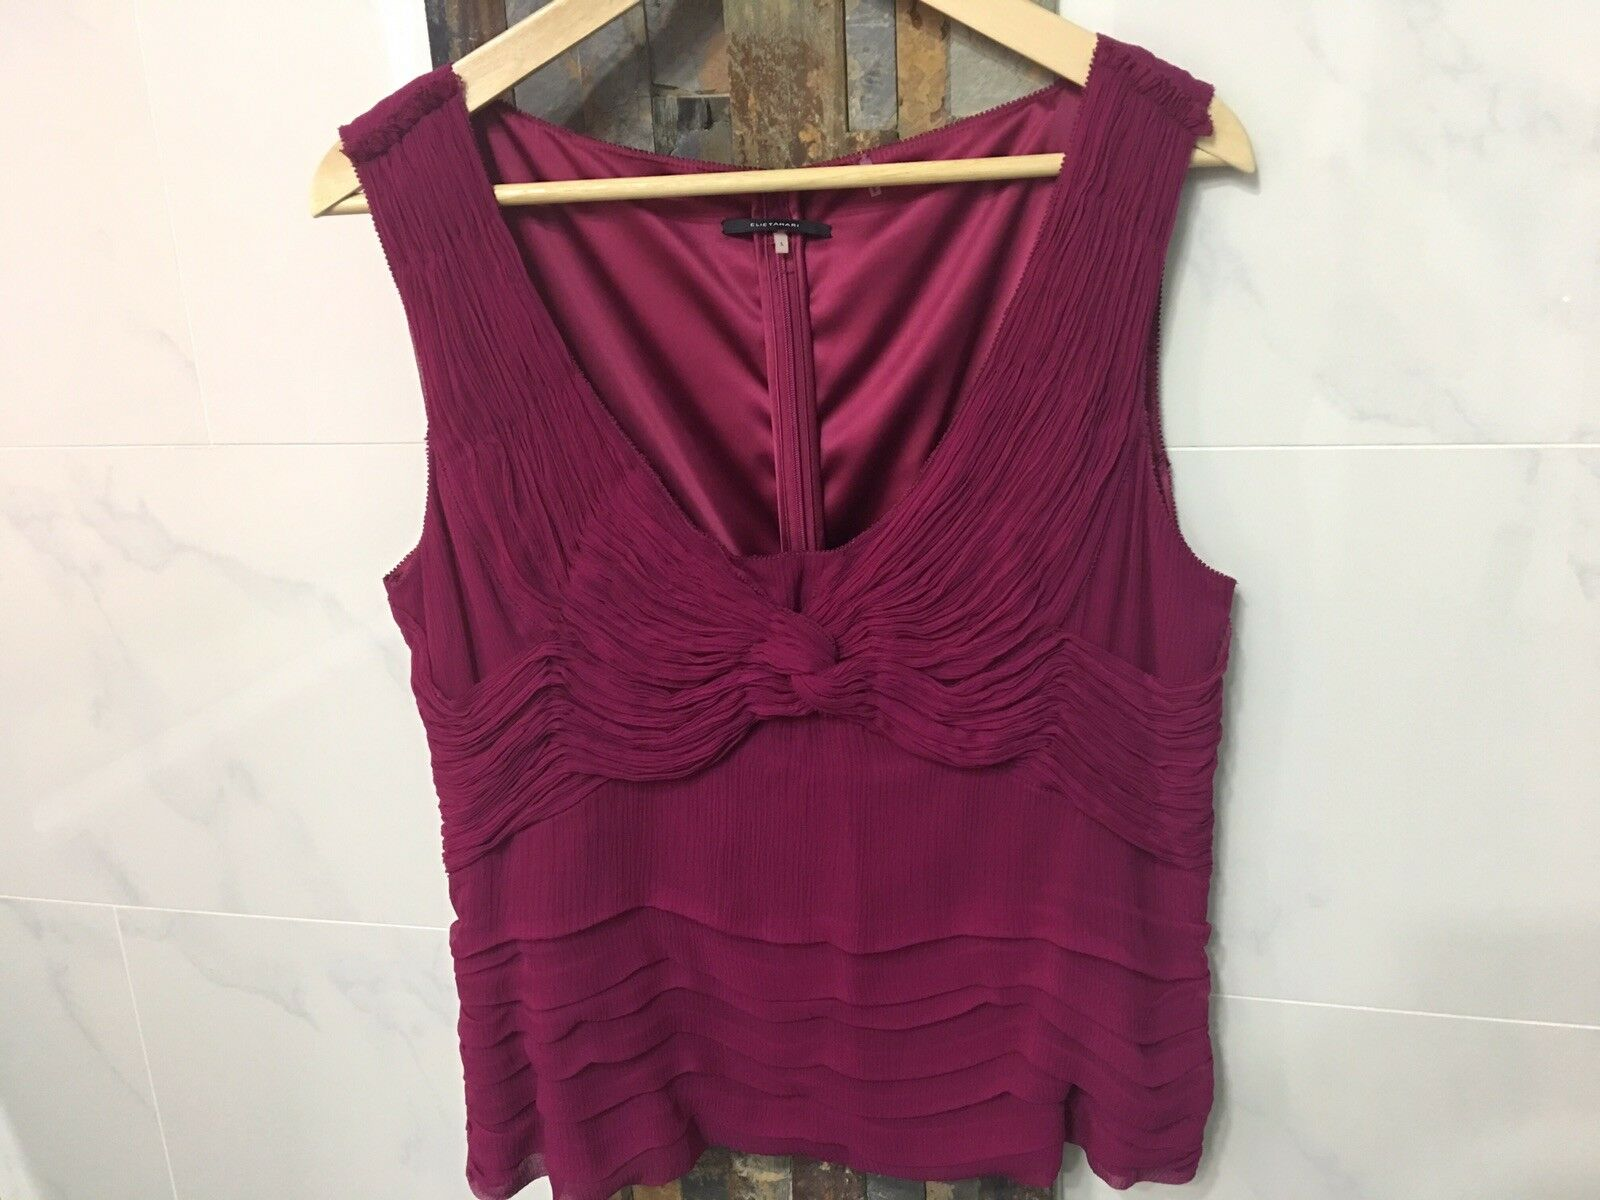 NWOT Elie Tahari silk Carmesi rot Draped Sleeveless blouse top damen Sz L